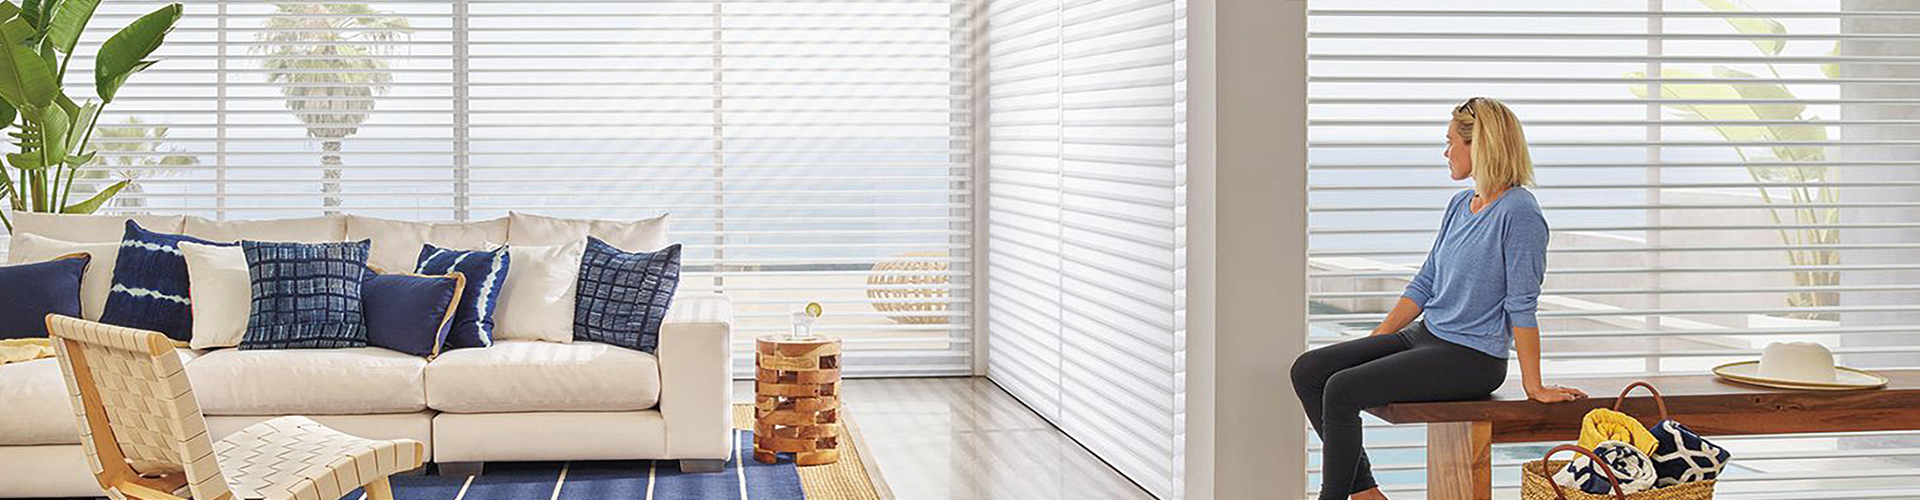 Hunter Douglas Blinds | The Well Dressed Window Kelowna